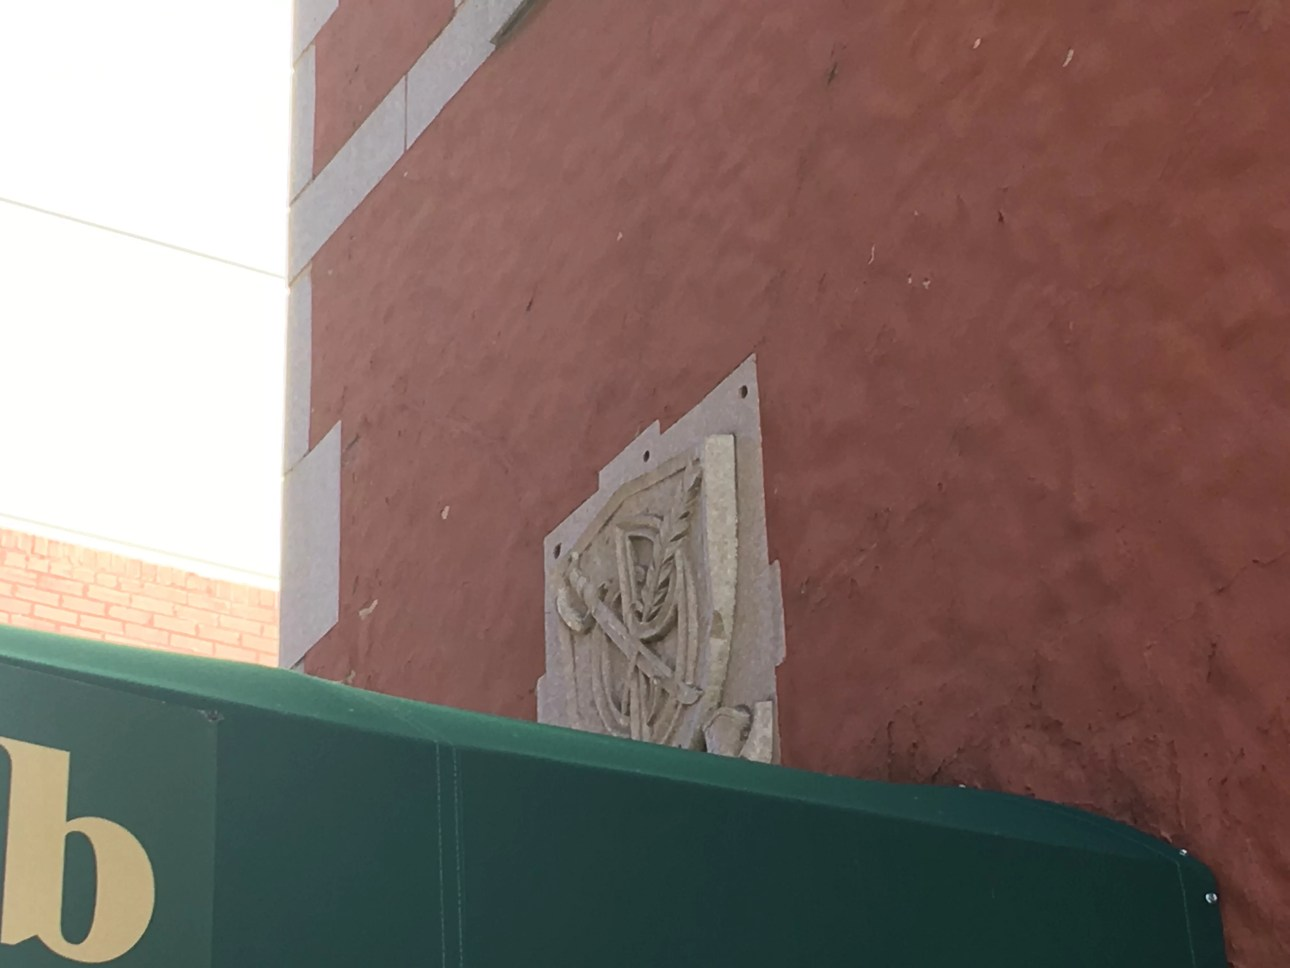 Denver press club coat of arms in stone above the green canopy